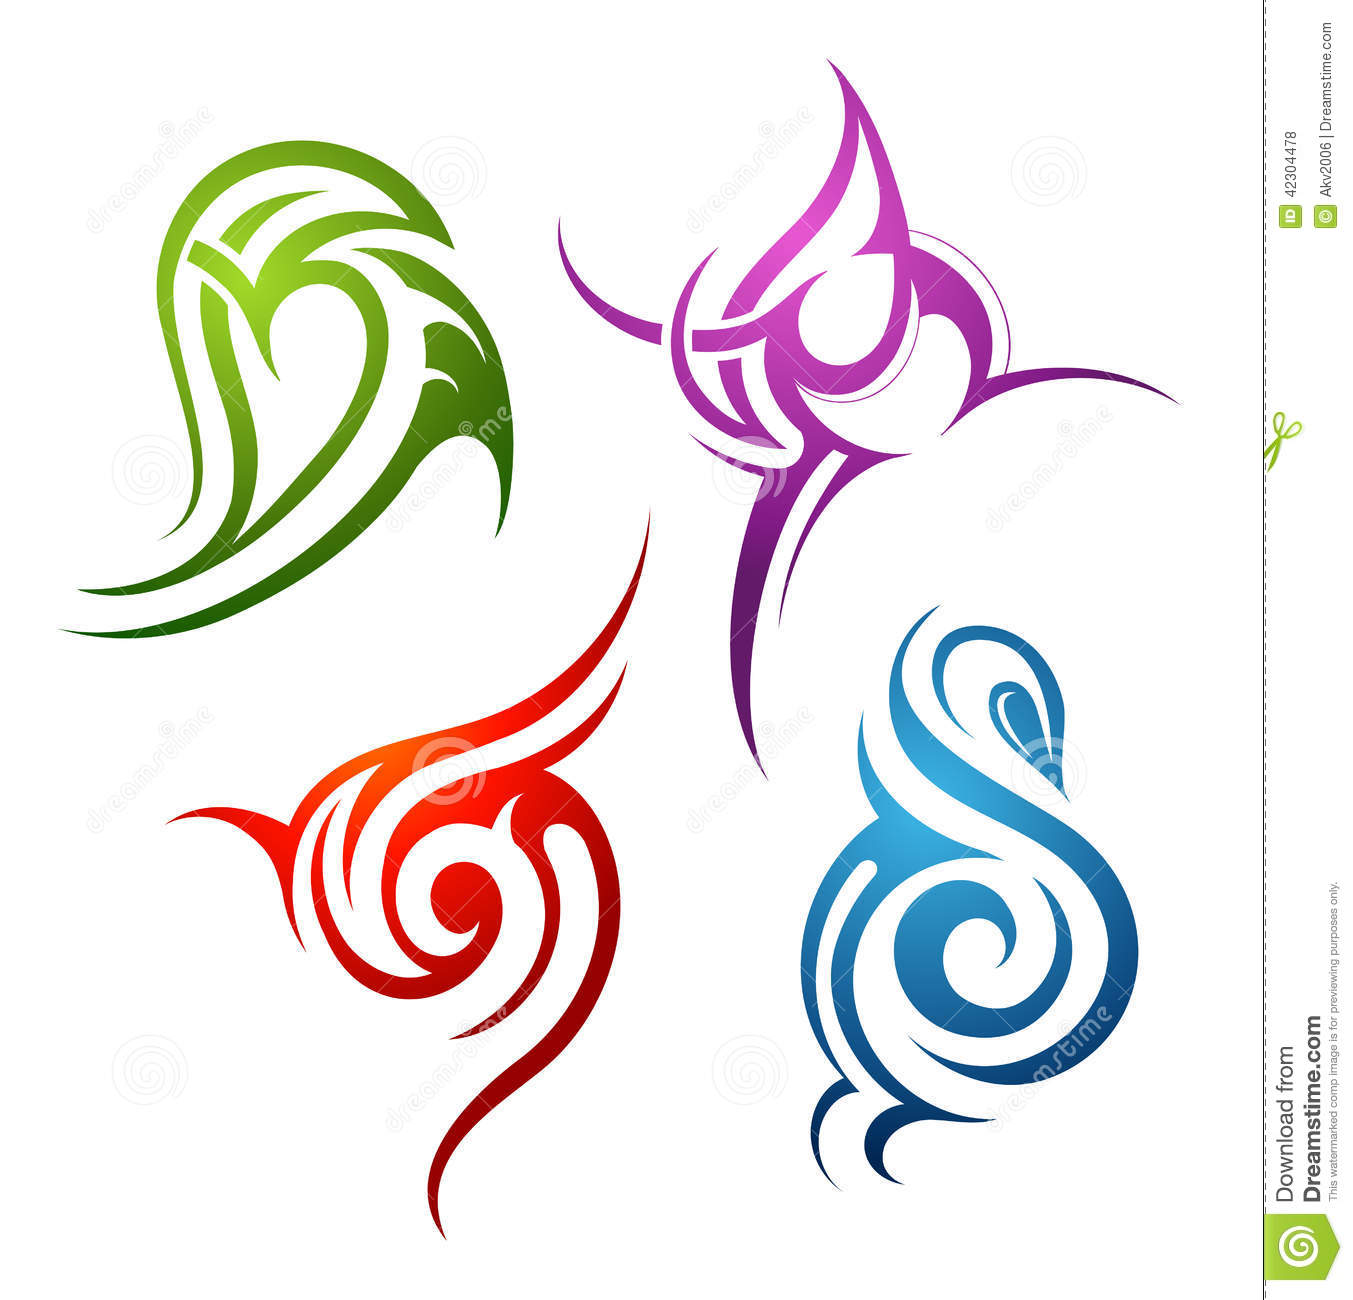 Symbols Of The Elements Earth Air Fire Water Spirit